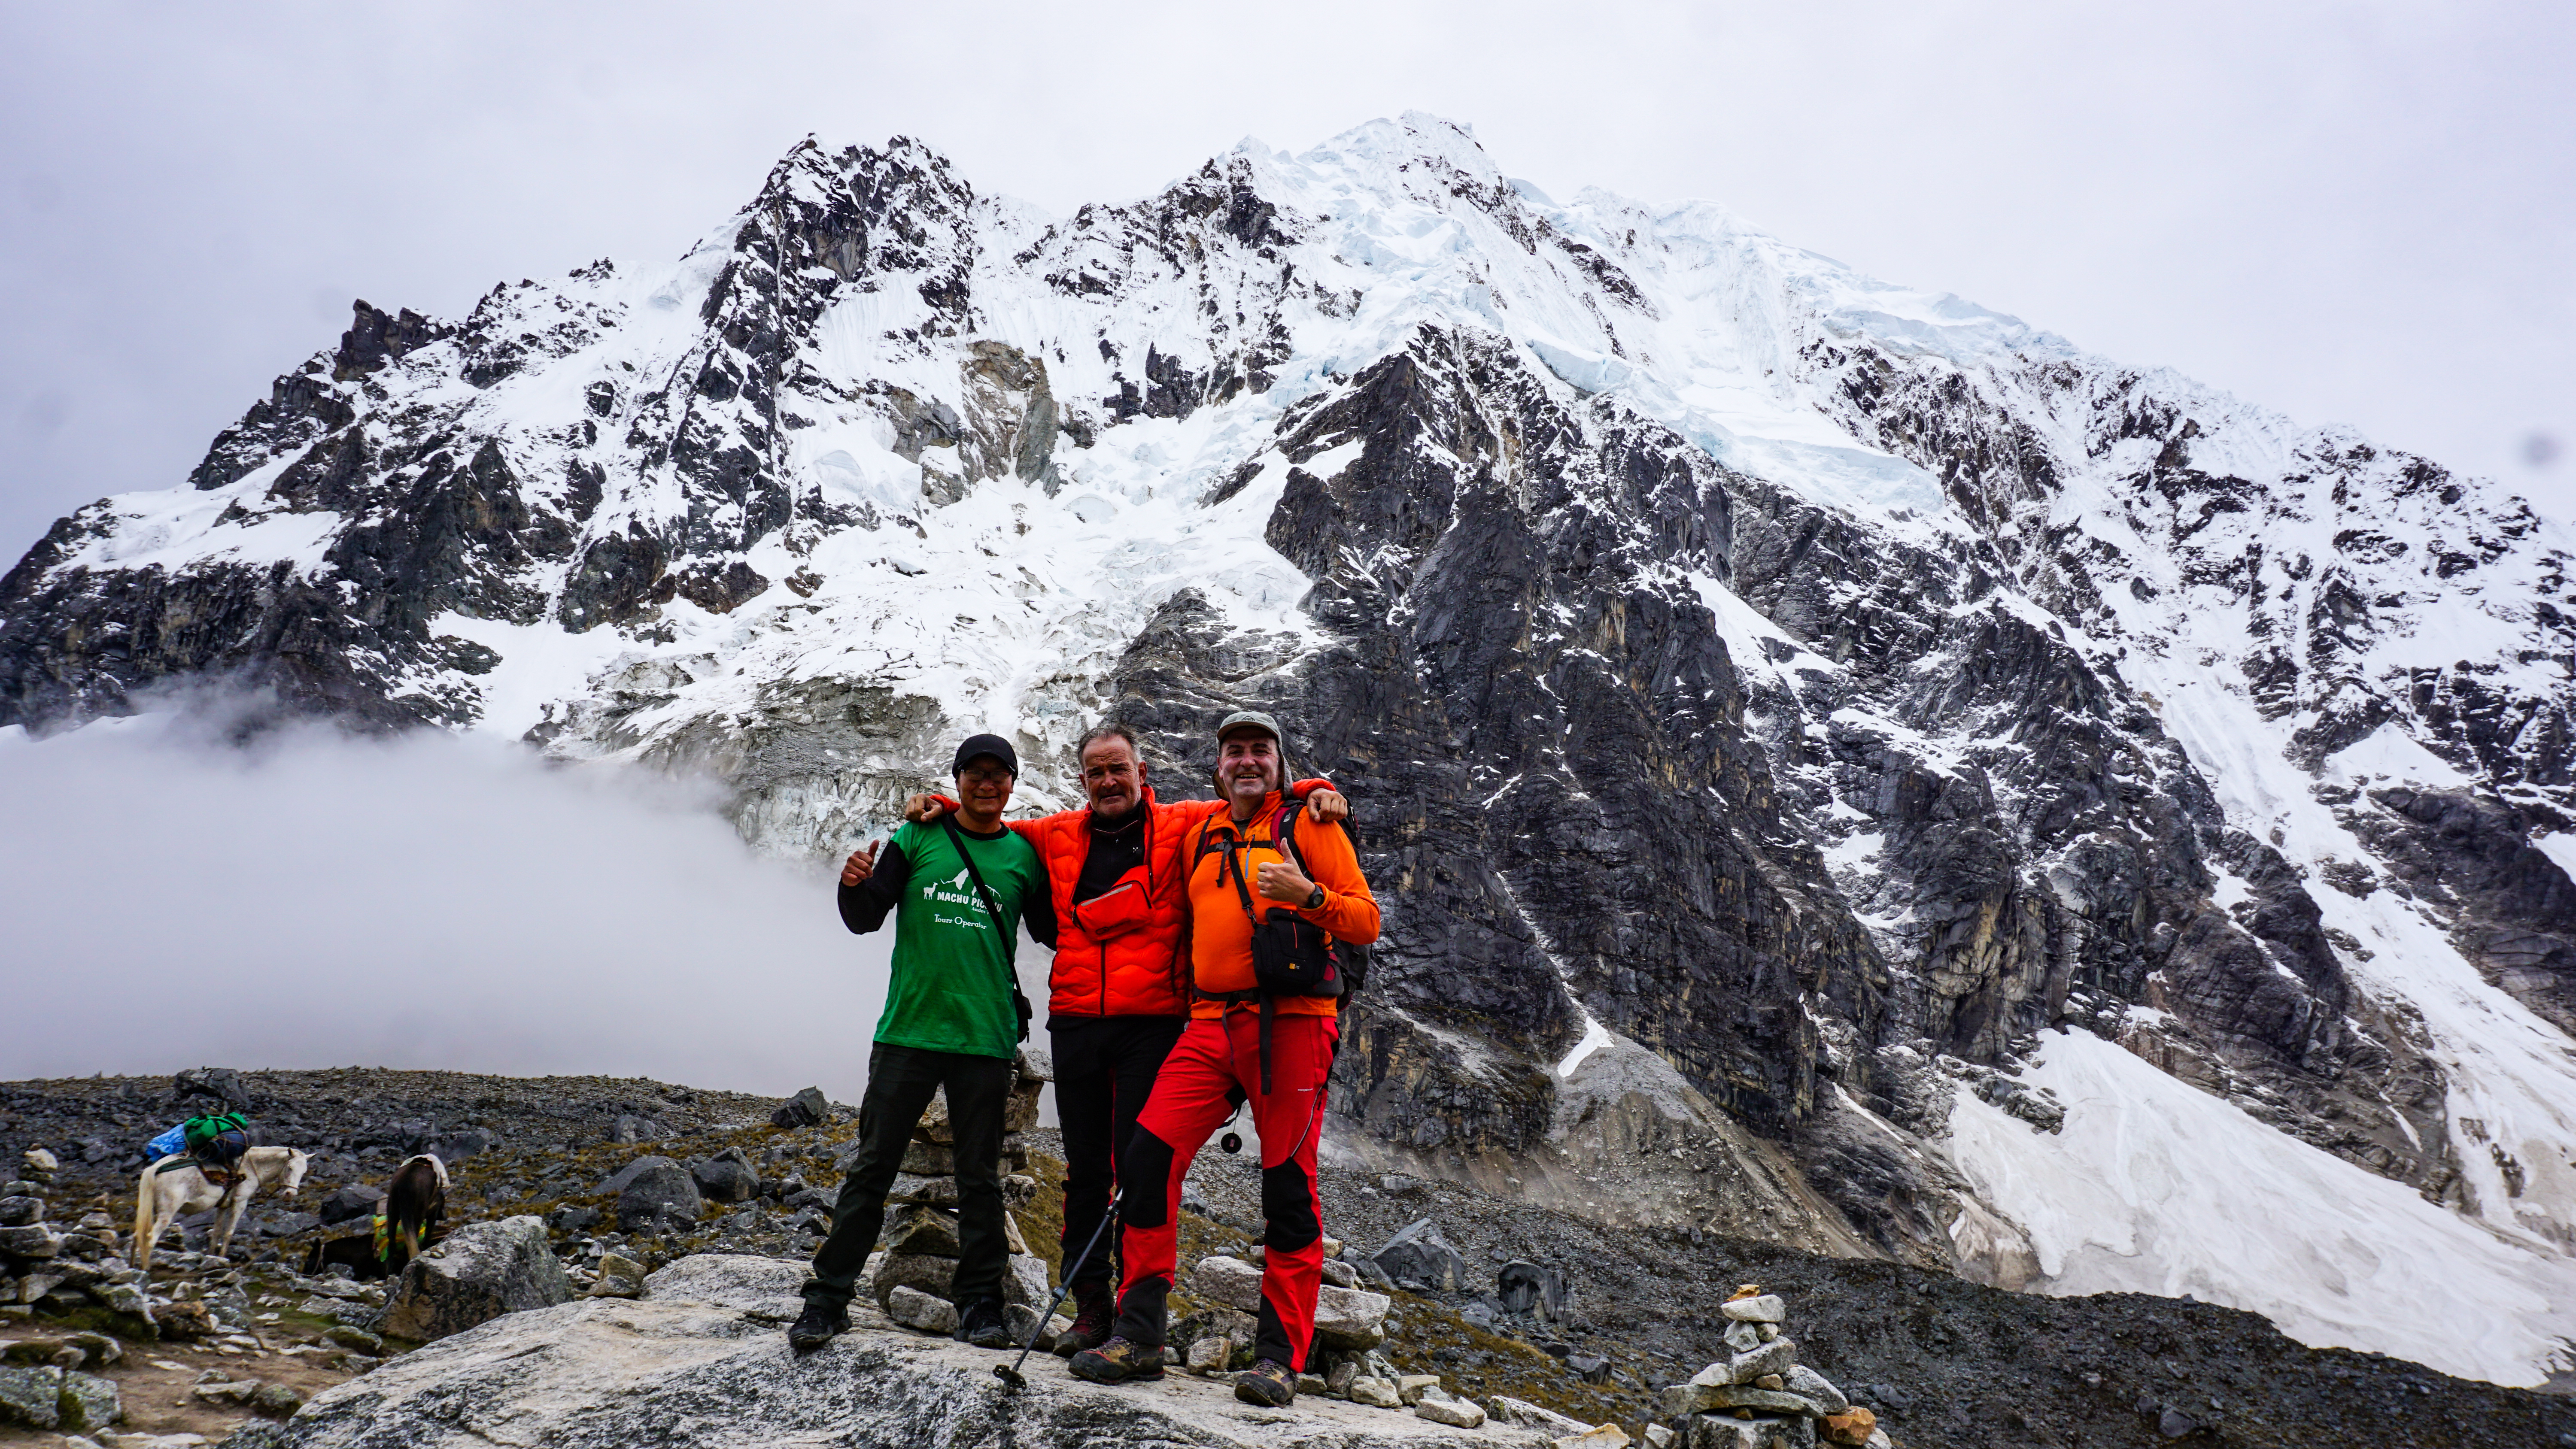 Exclusive Salkantay trek 4-day to Machu Picchu by Llactapata – Private